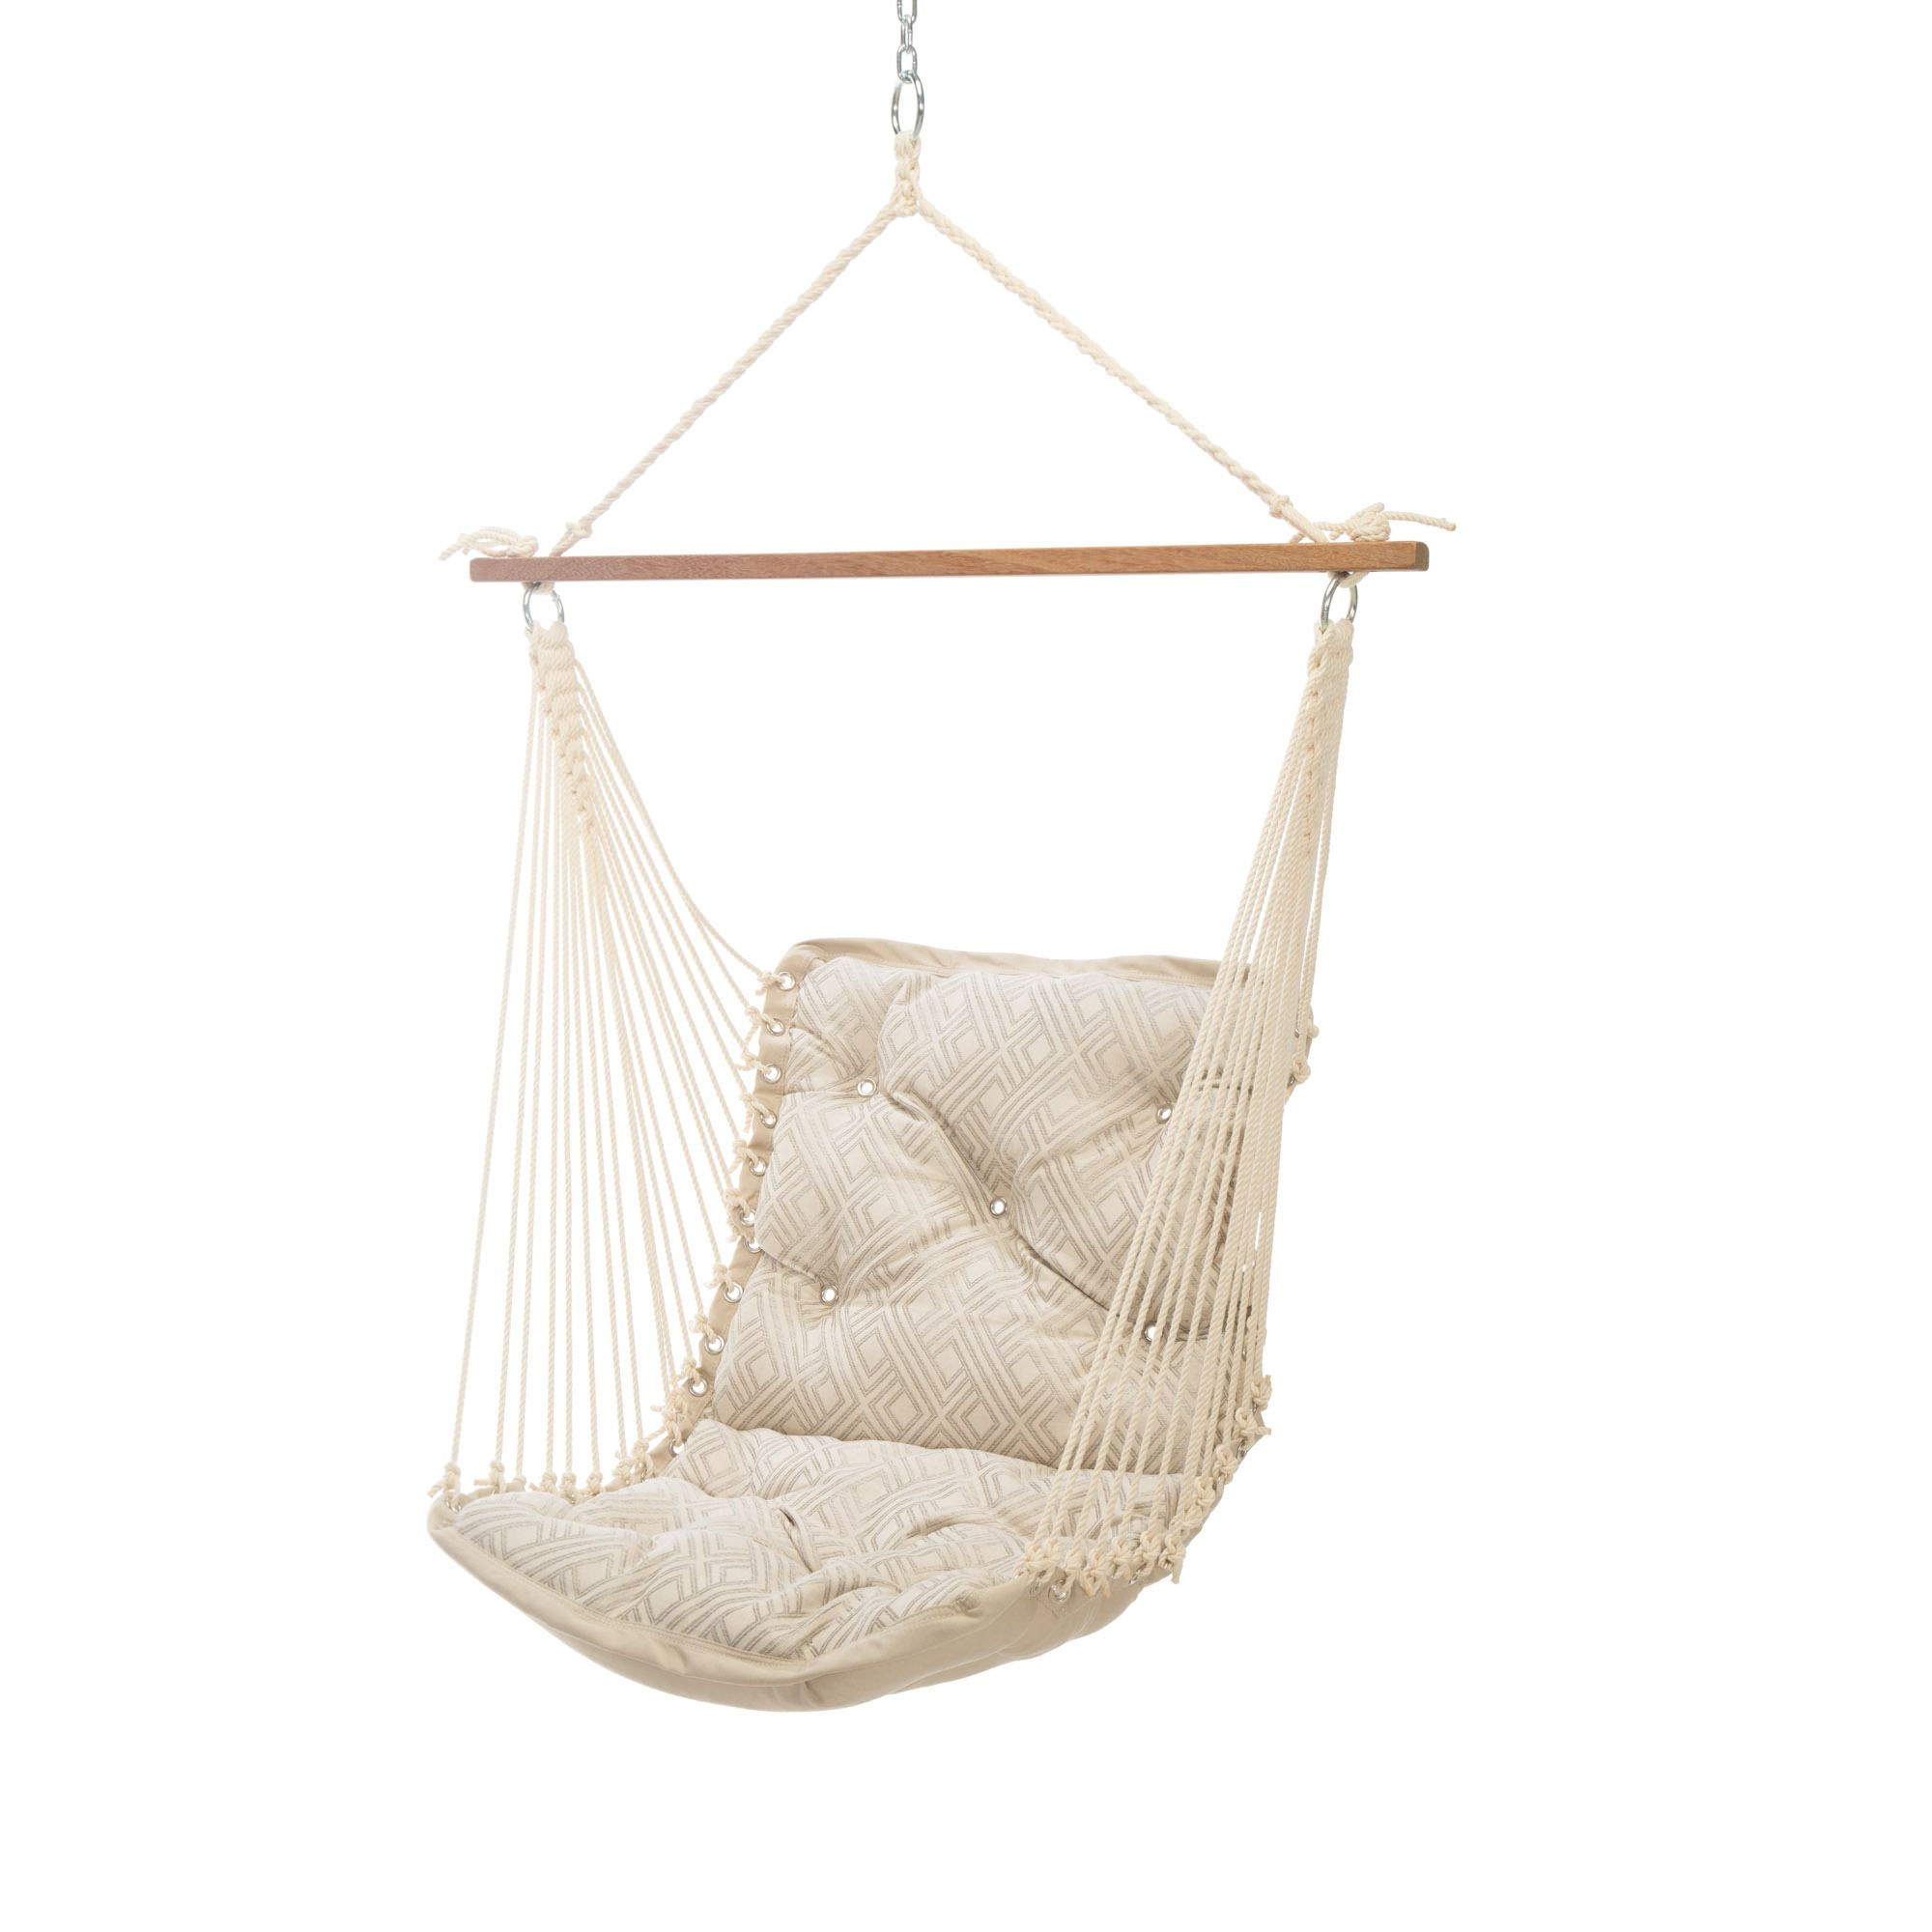 sunbrella-tufted-swing-chair-product-review